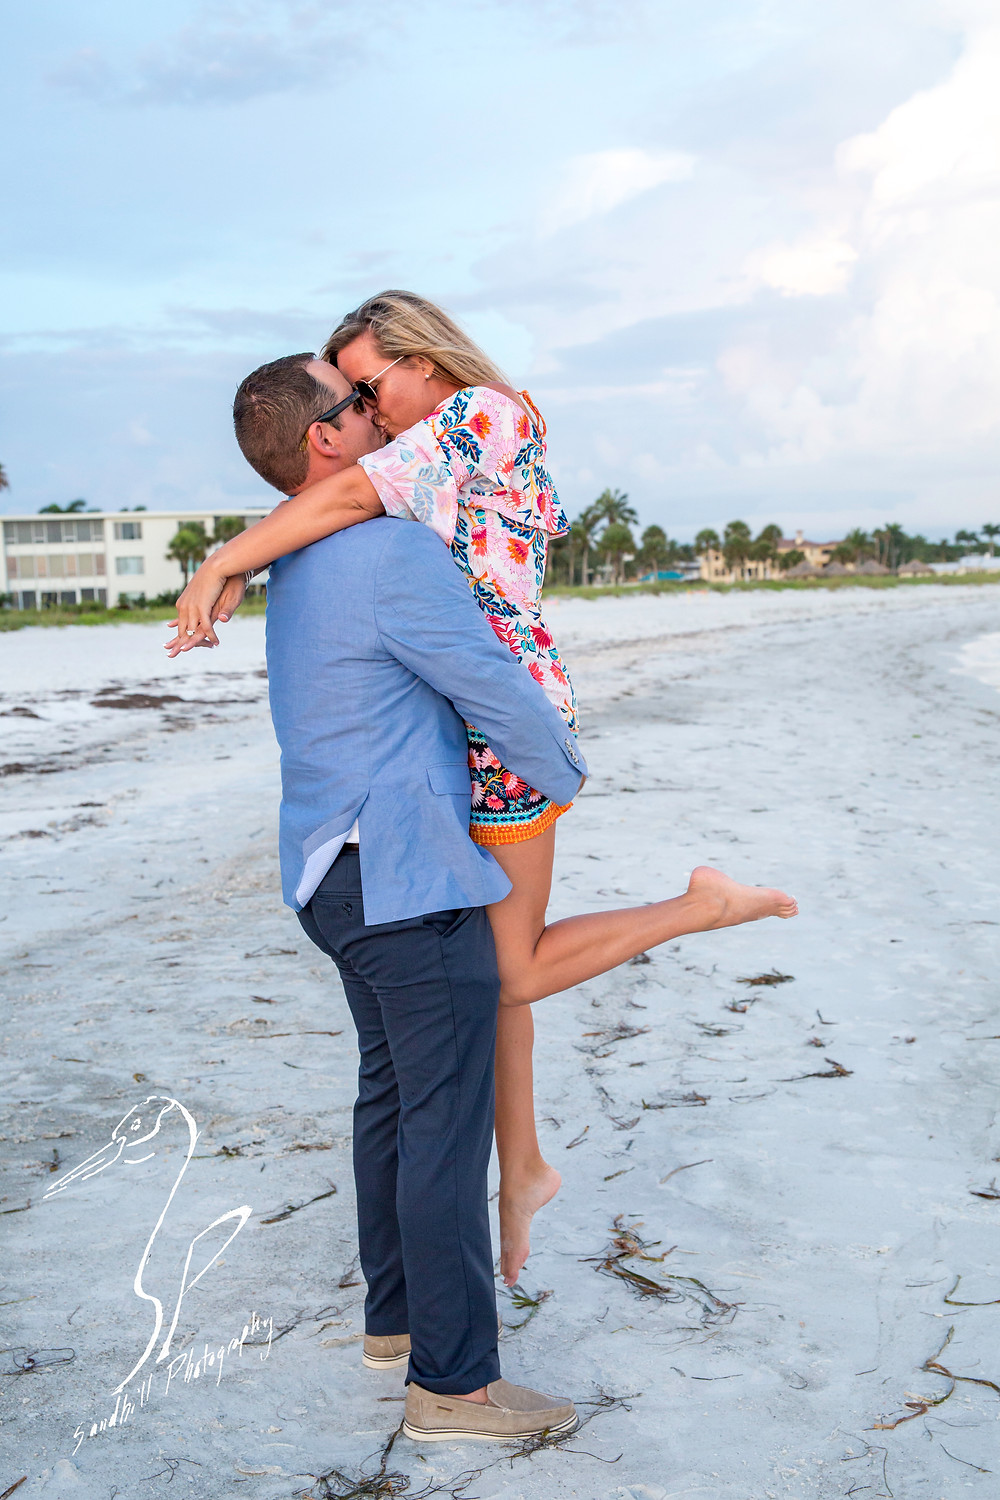 Longboat Key Surprise Proposal man picks up his fiance to kiss her on the beach